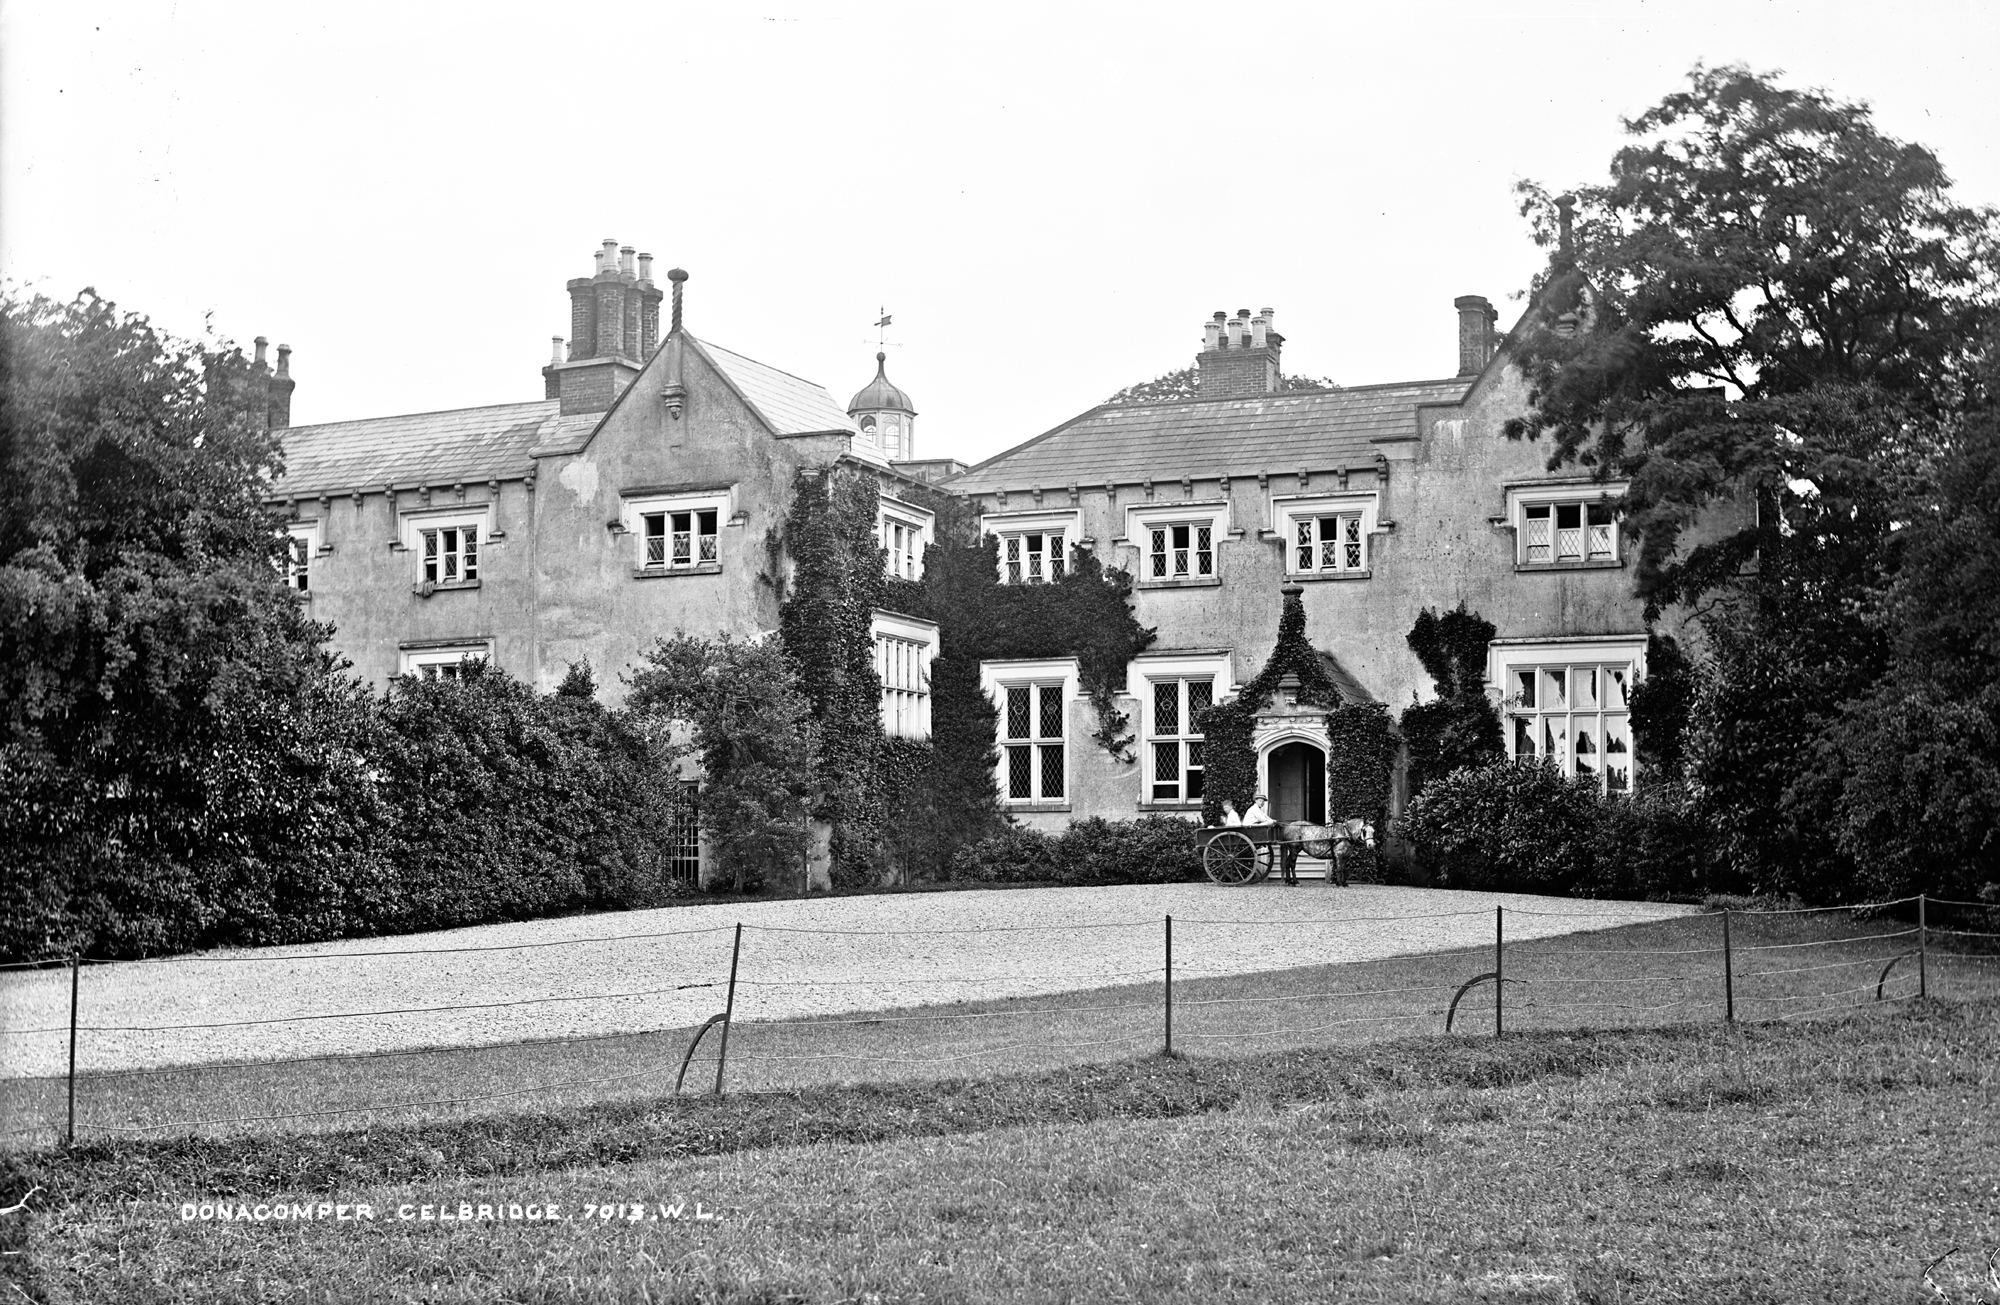 Donnacomper, Celbridge, Co. Kildare